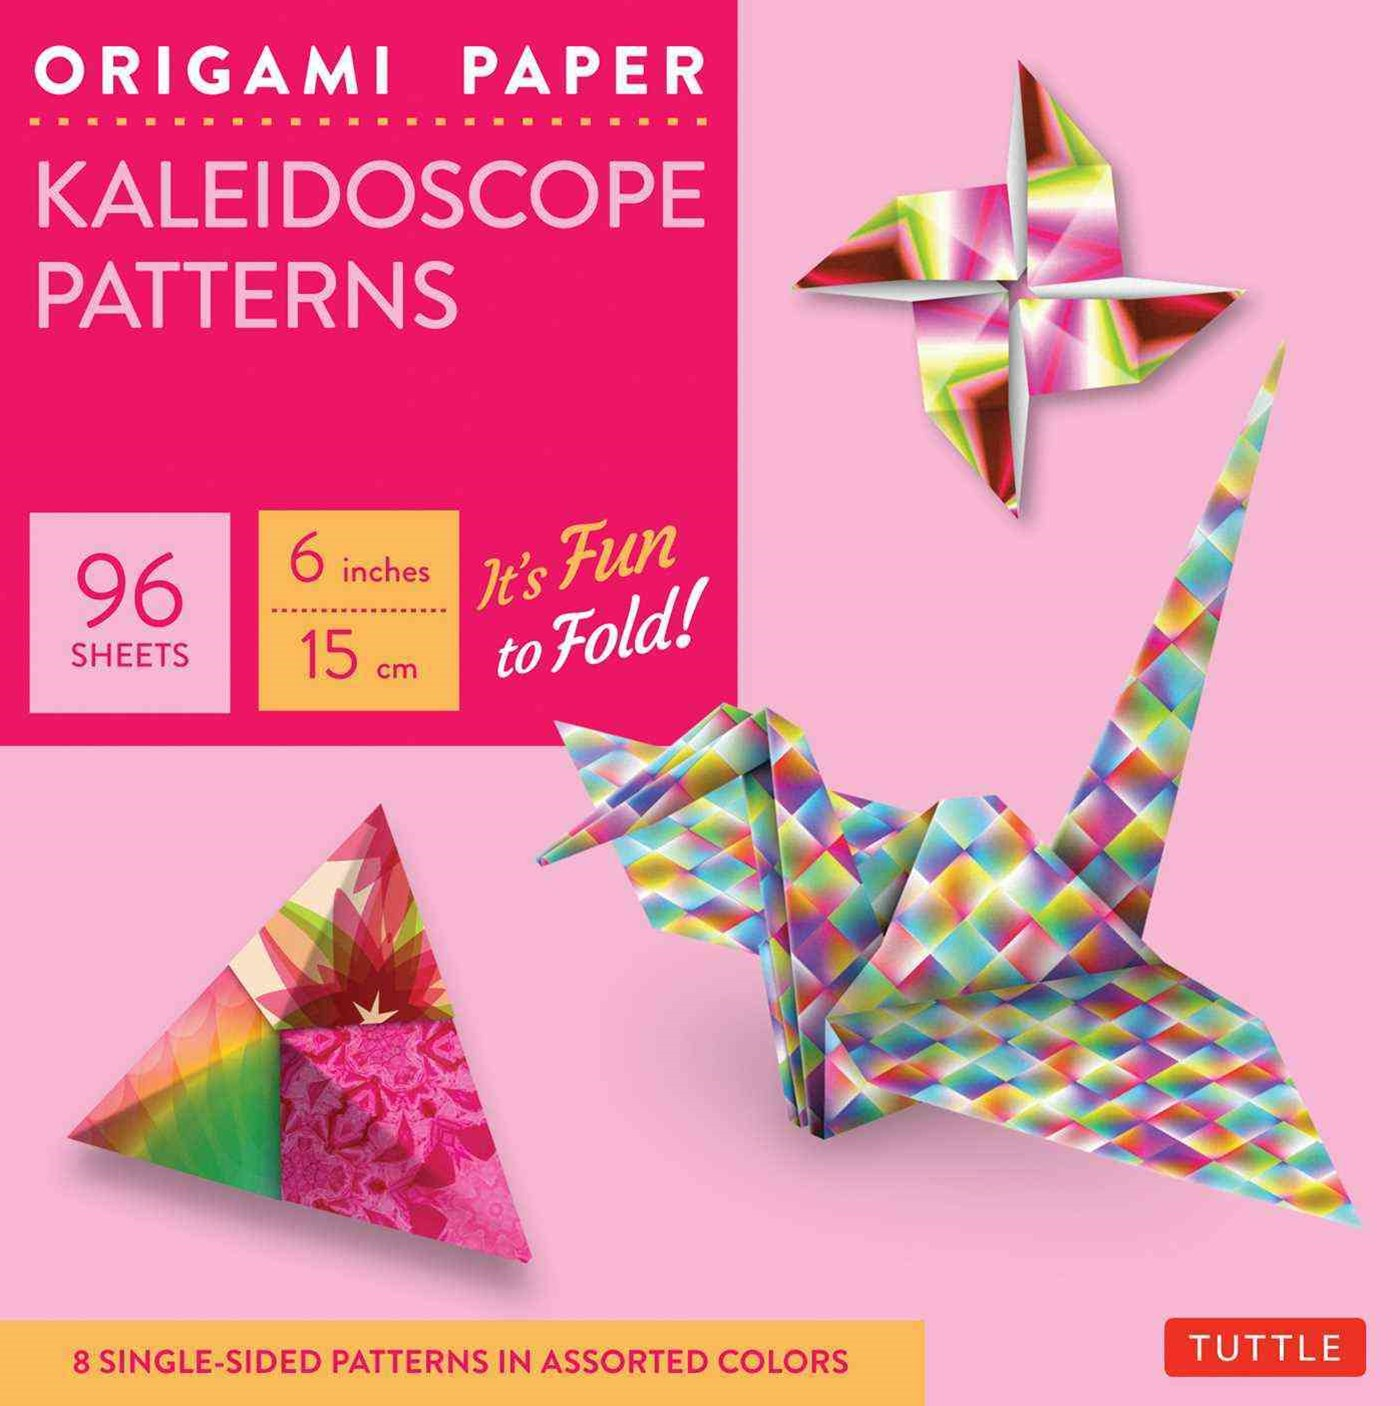 Origami Paper: Kaleidoscope Patterns